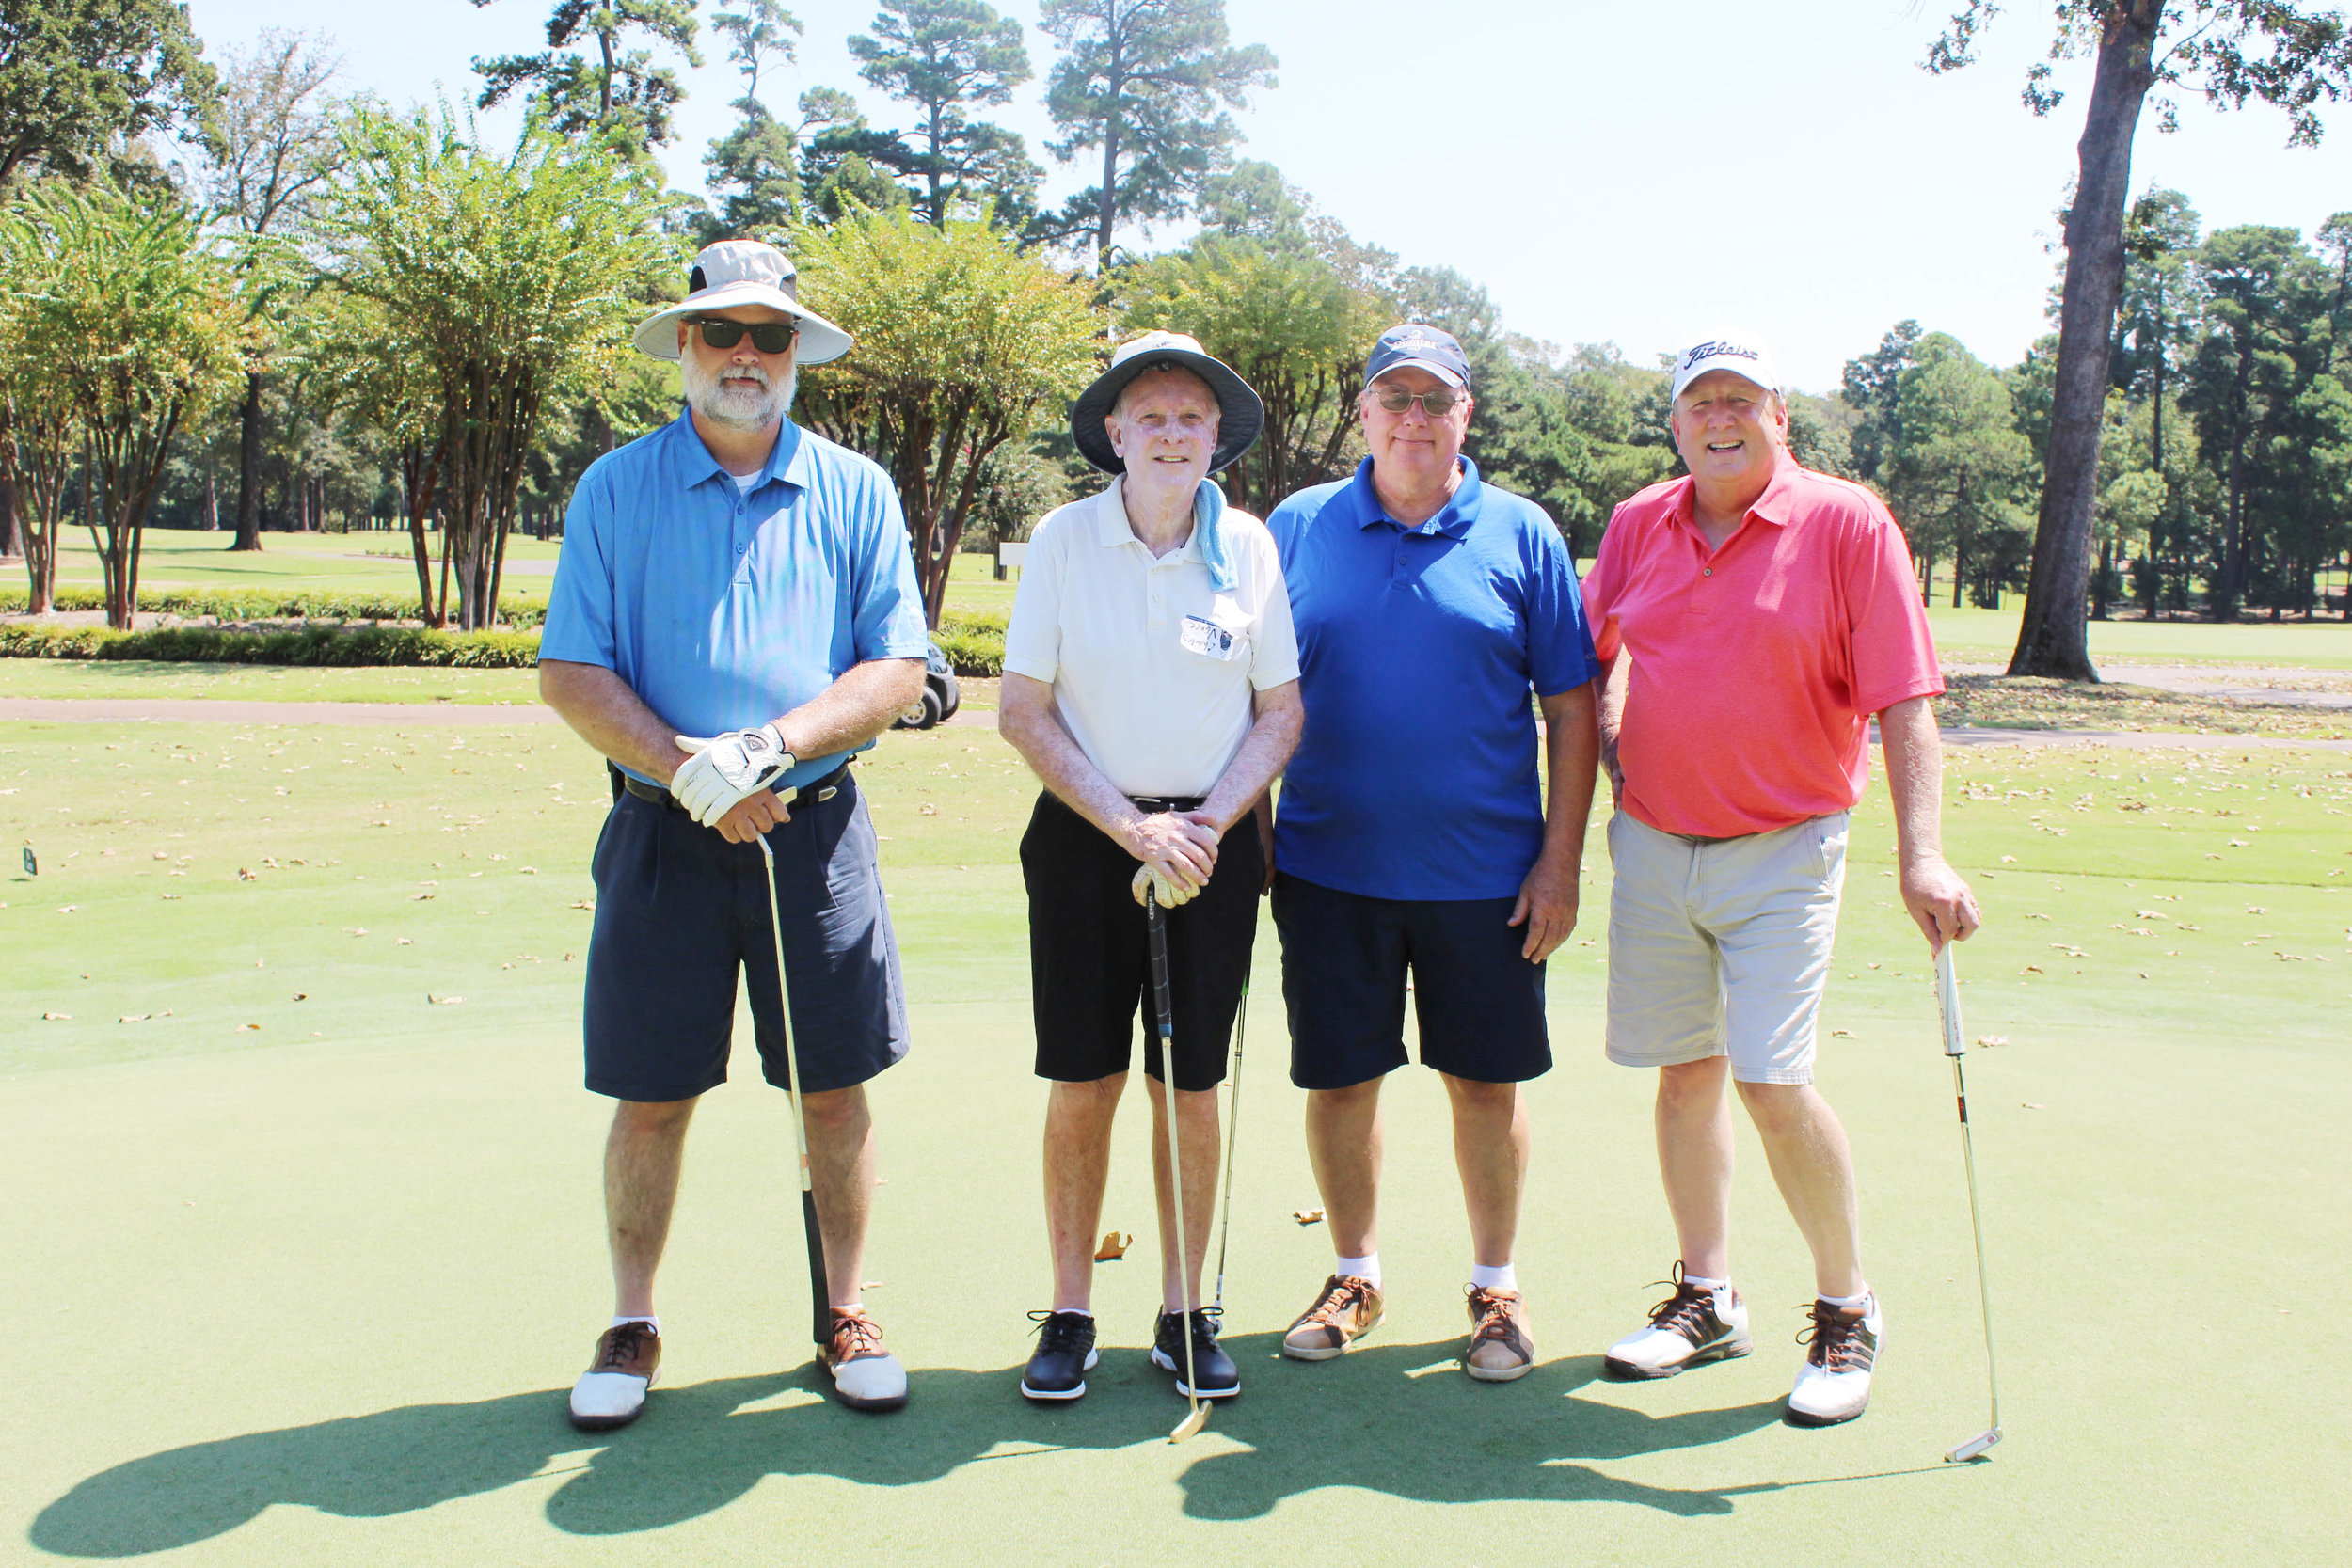 Paul Knowles, Charles Vance, Randy Gerber and Rick Rodenroth